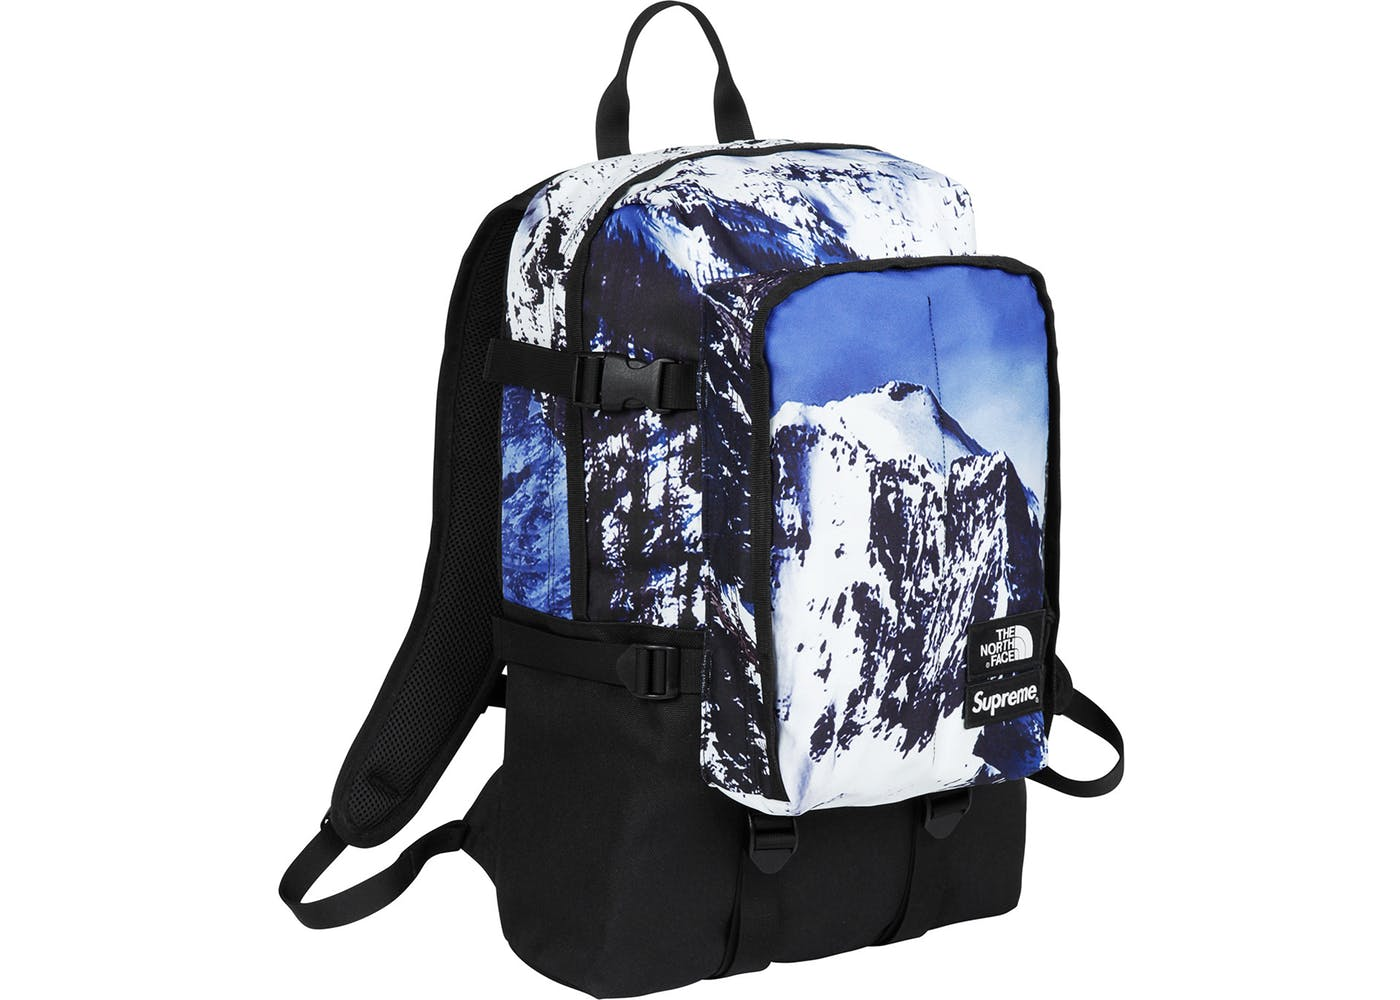 52176a23a Supreme X North Face Backpack Yellow And Blue - CEAGESP